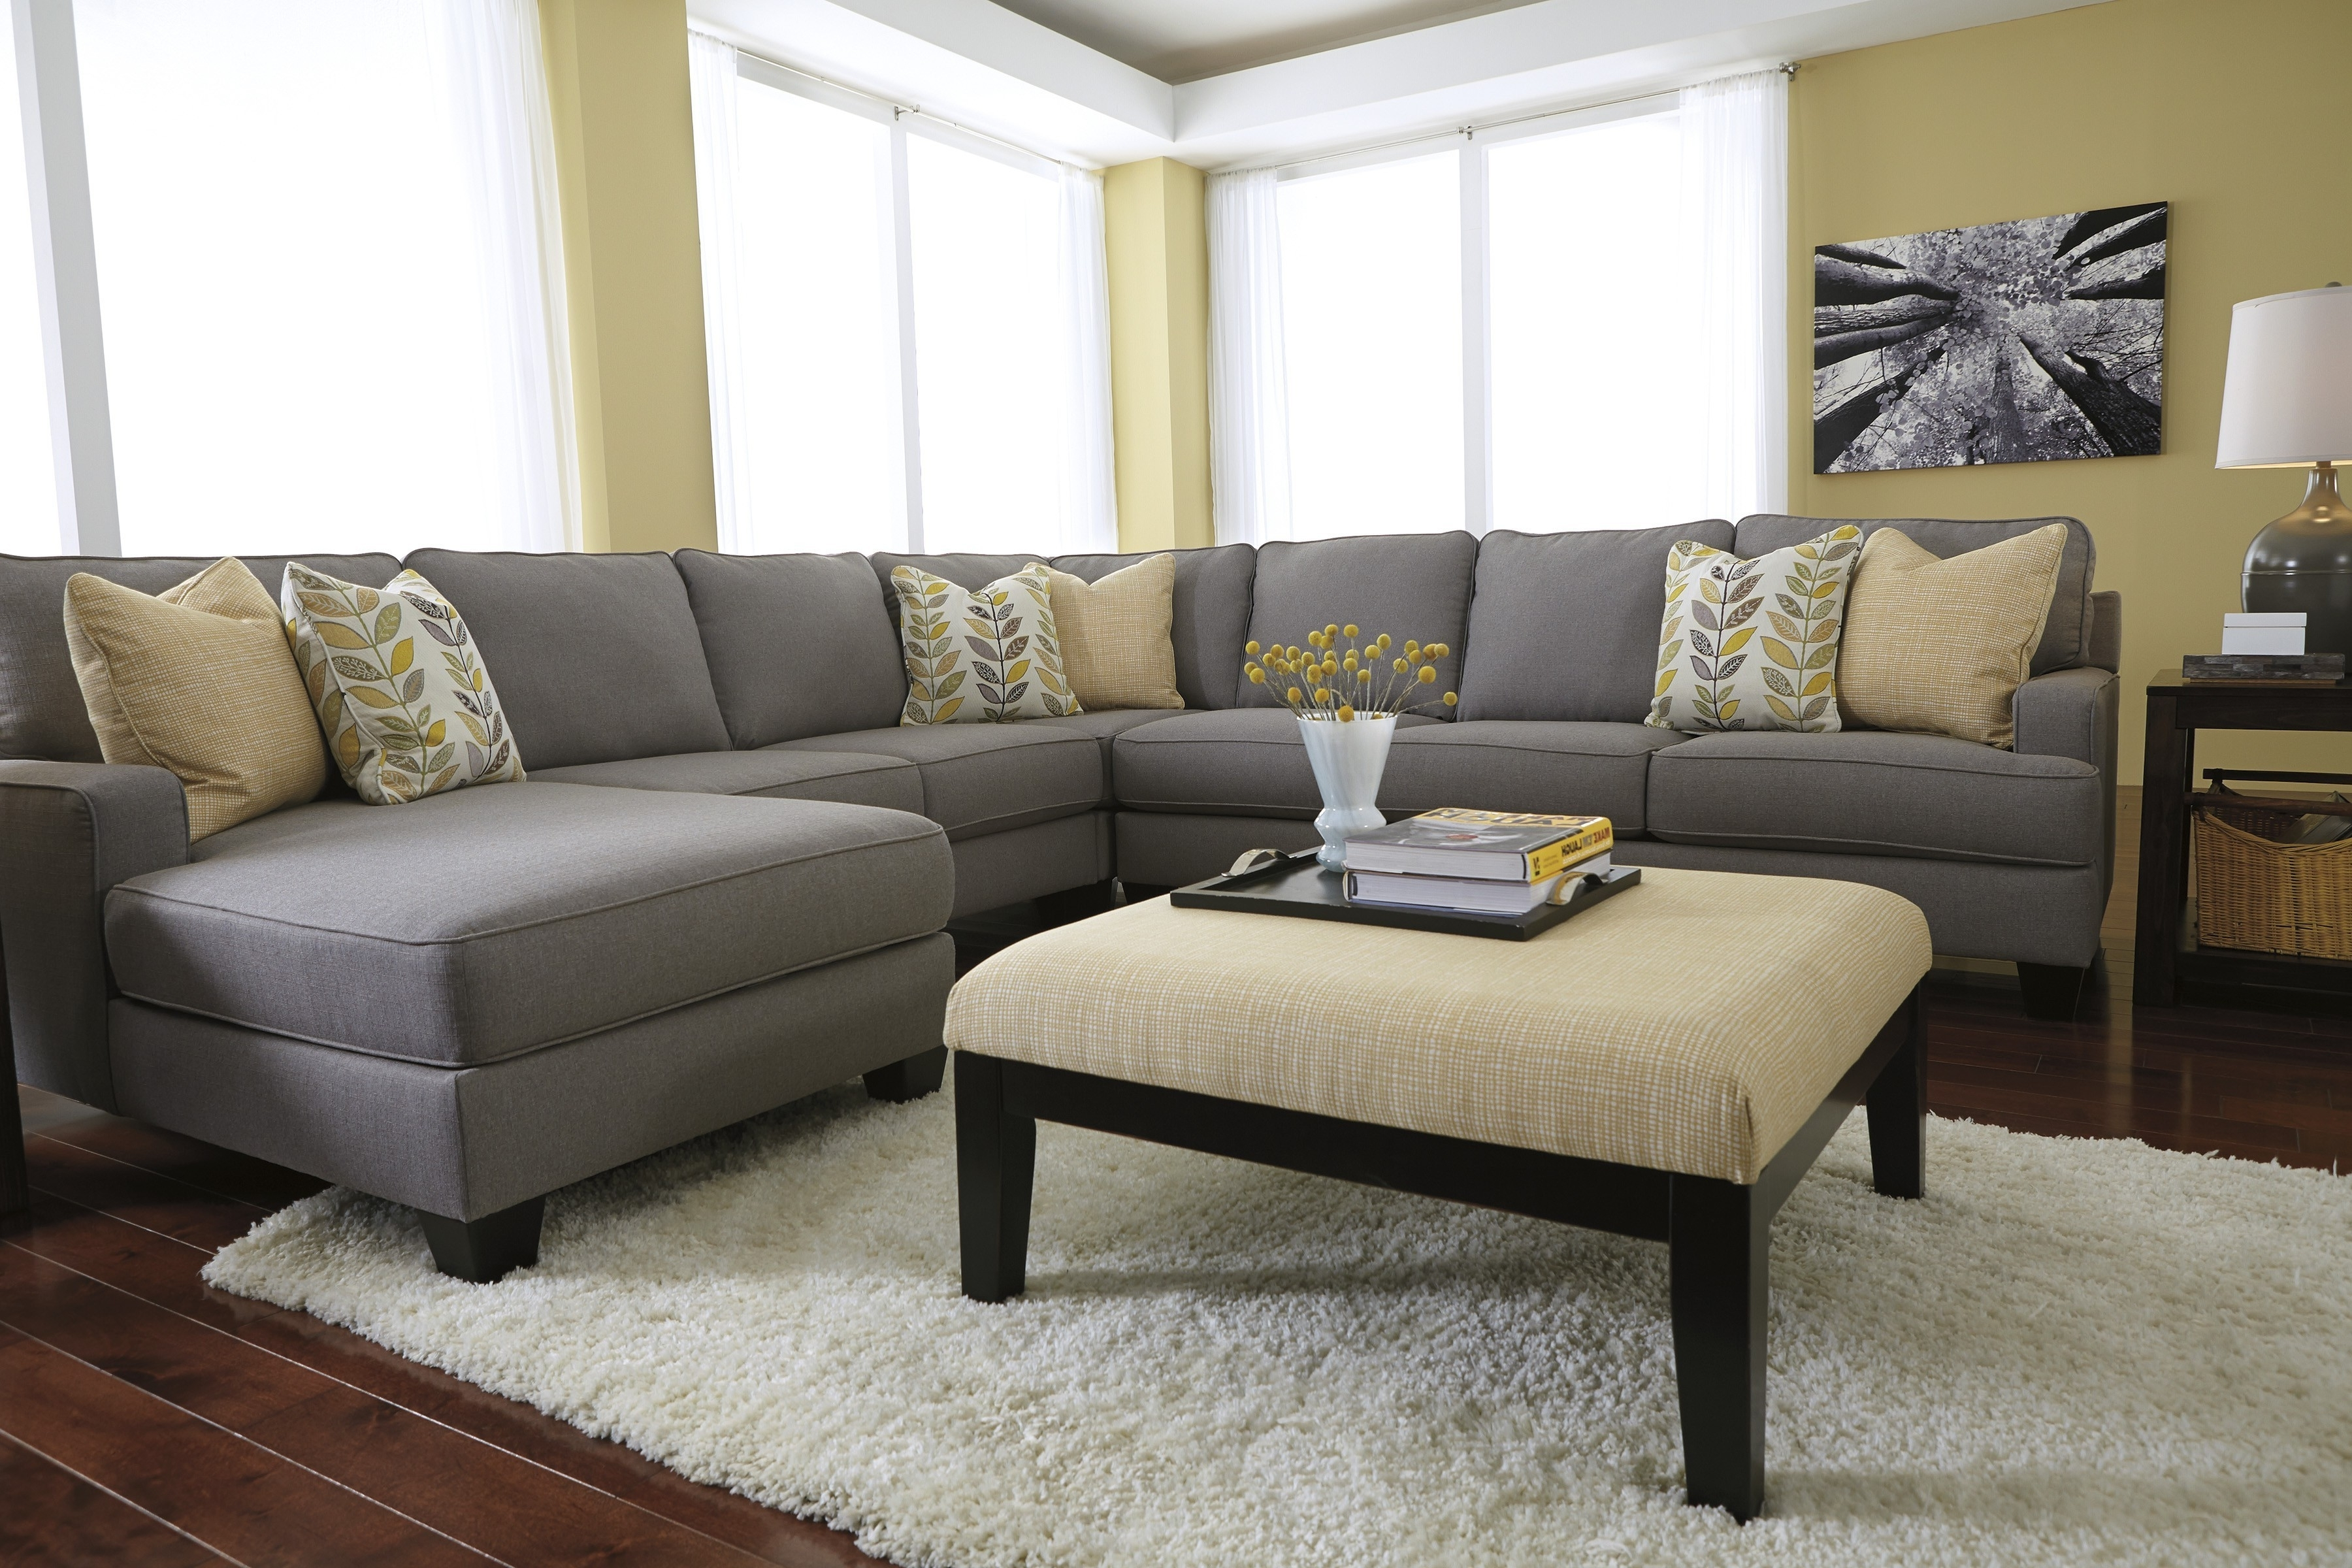 Home Design : Extraordinary Best Modern Fabric Sectional Sofas Pertaining To Trendy Modern U Shaped Sectionals (View 9 of 20)